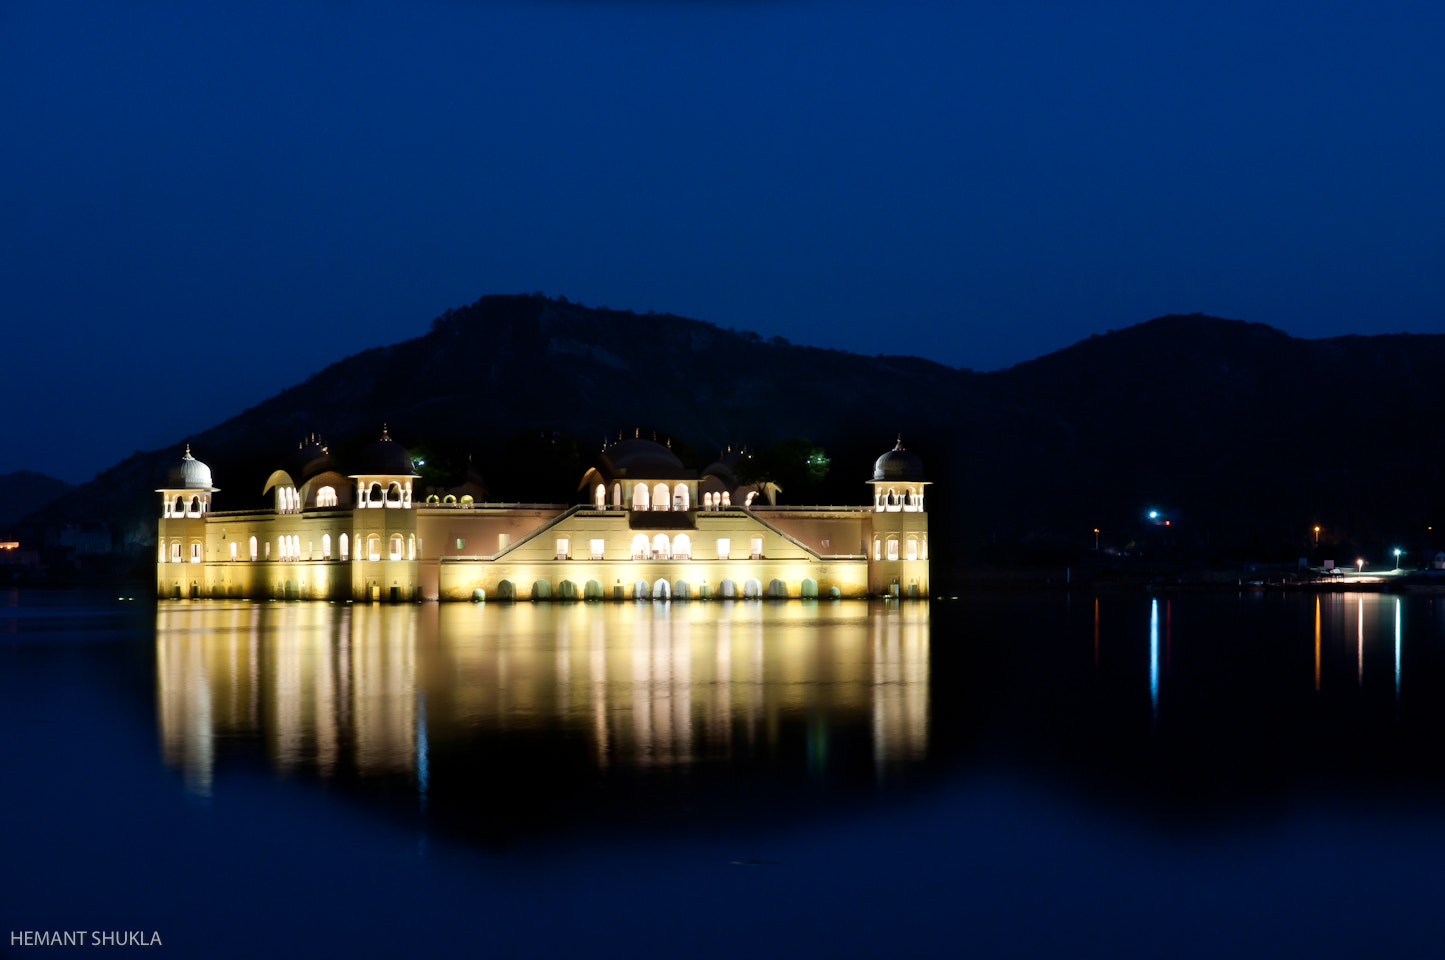 Photograph Jal Mahal by Hemant Shukla on 500px